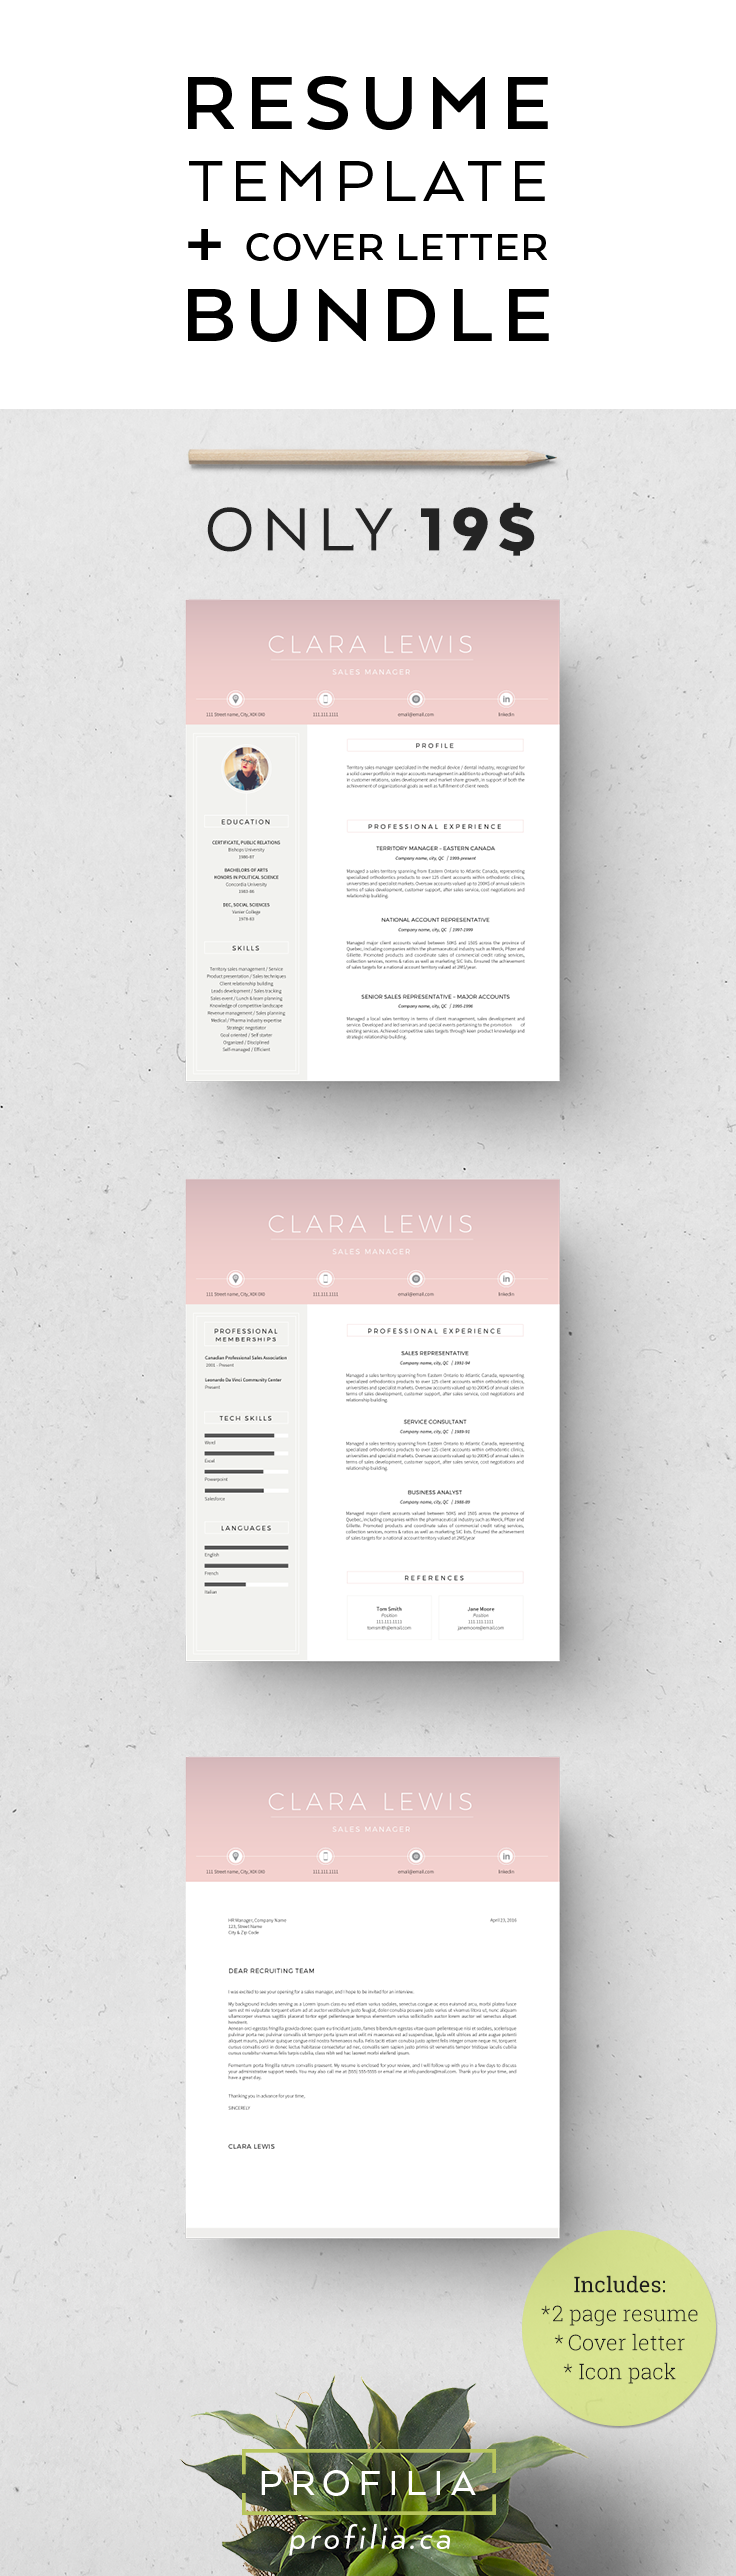 Cover Letter In A Resume Best Modern Resume & Cover Letter Template  Editable Word Format .